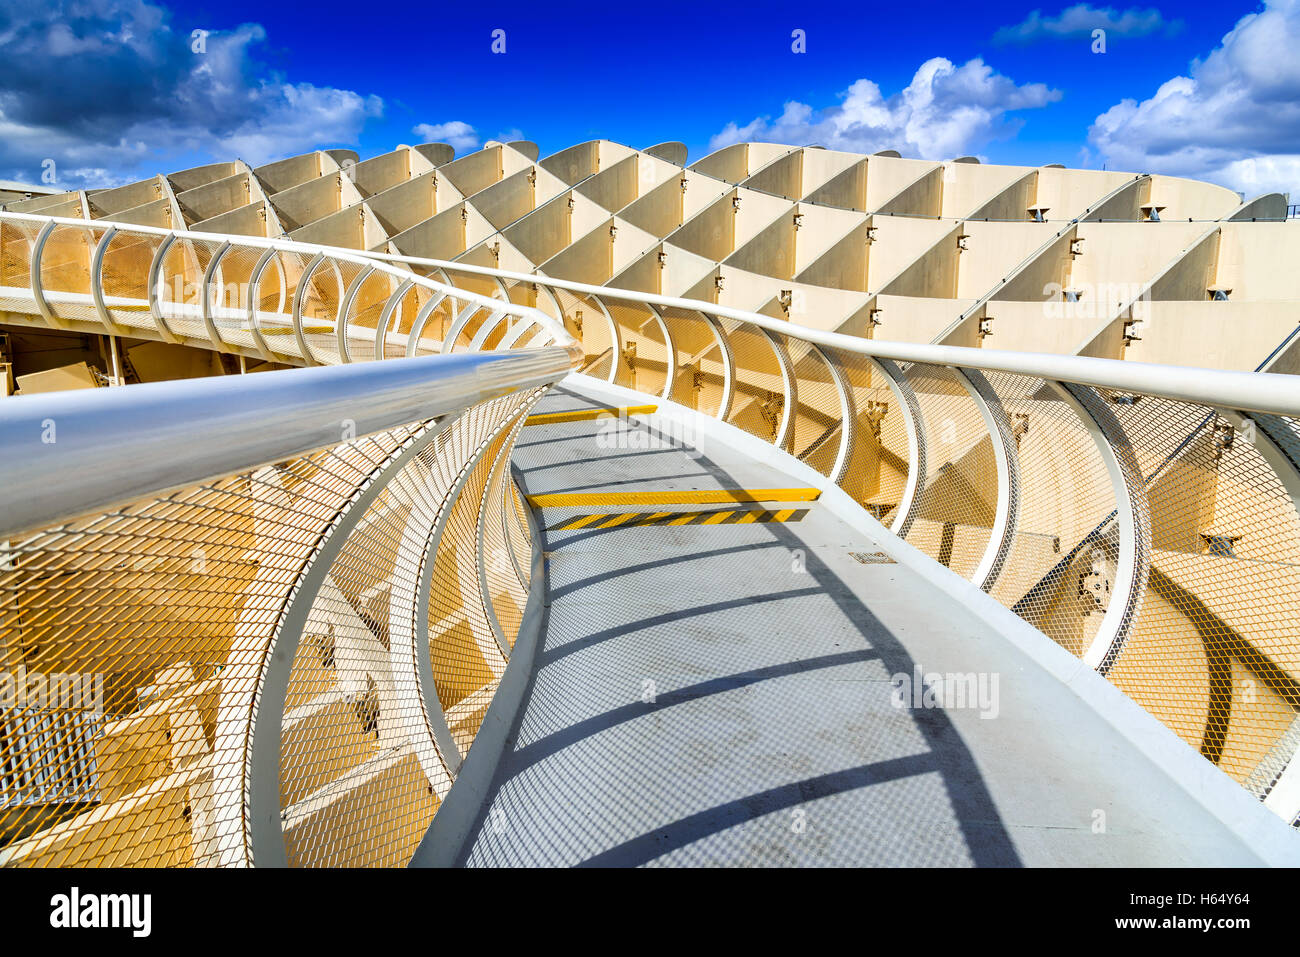 Seville, Spain. Metropol Parasol in Plaza de la Encarnacion. J. Mayer H. architects, it is made from bonded timber. - Stock Image